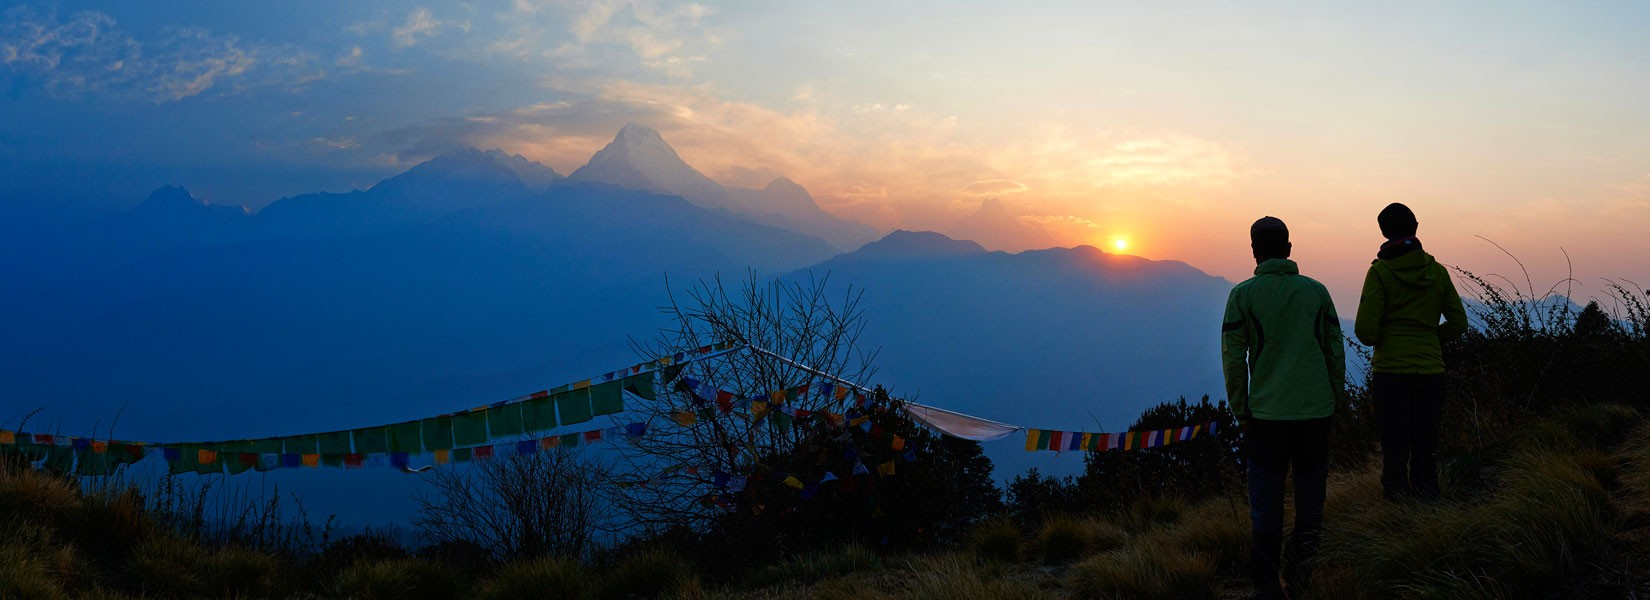 Sunrise View from Poon Hill